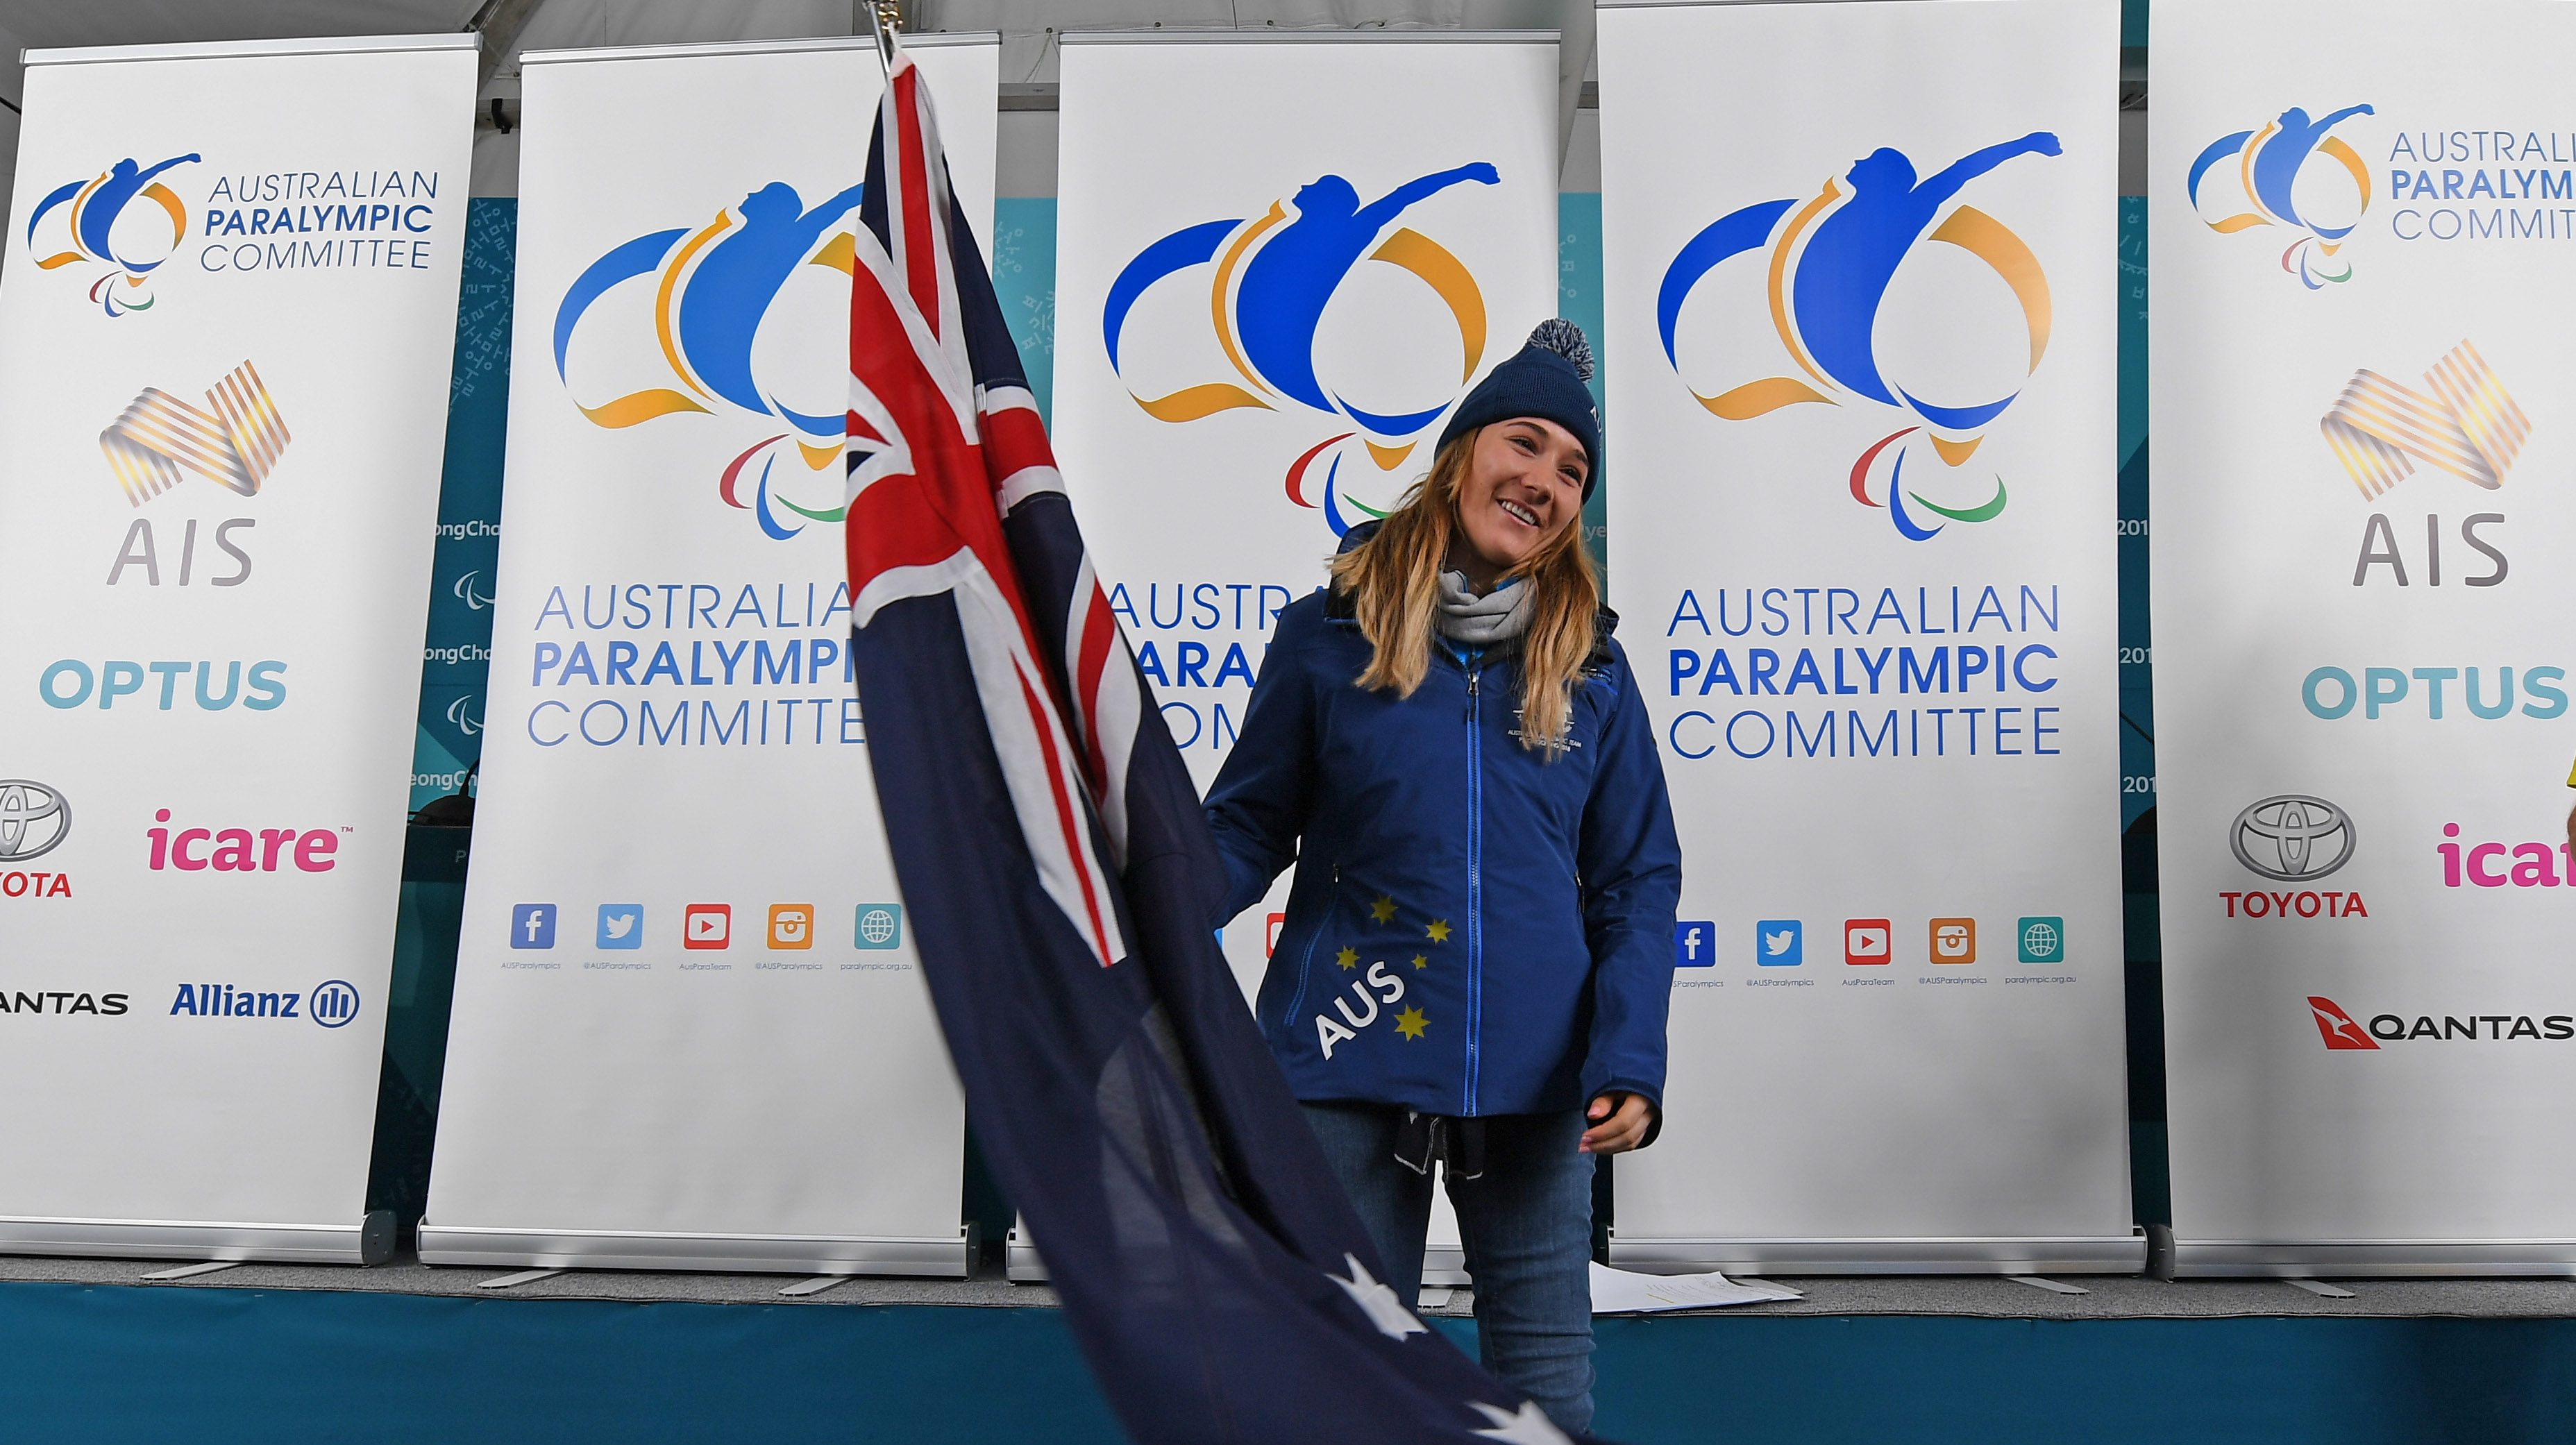 A statement from the Australian Paralympic Committee